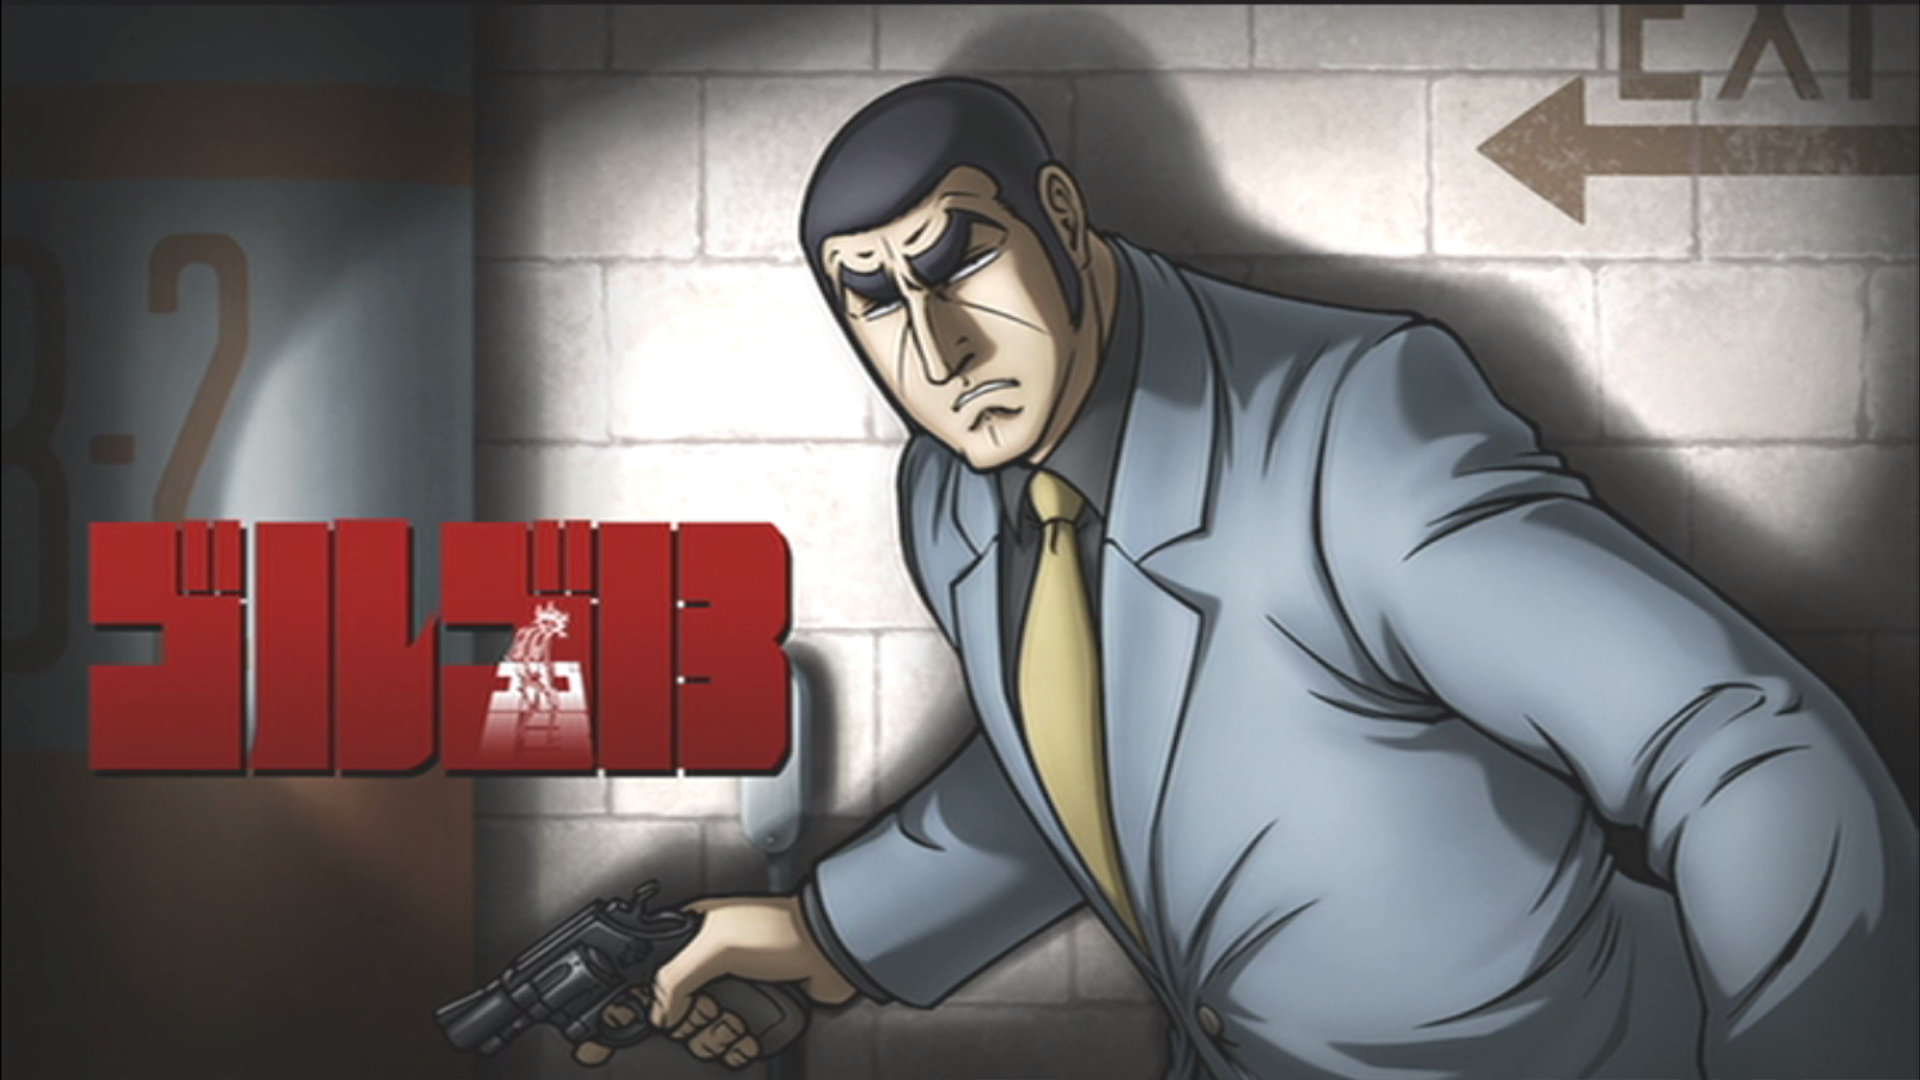 Awesome Golgo 13 free wallpaper ID:144502 for hd 1080p computer